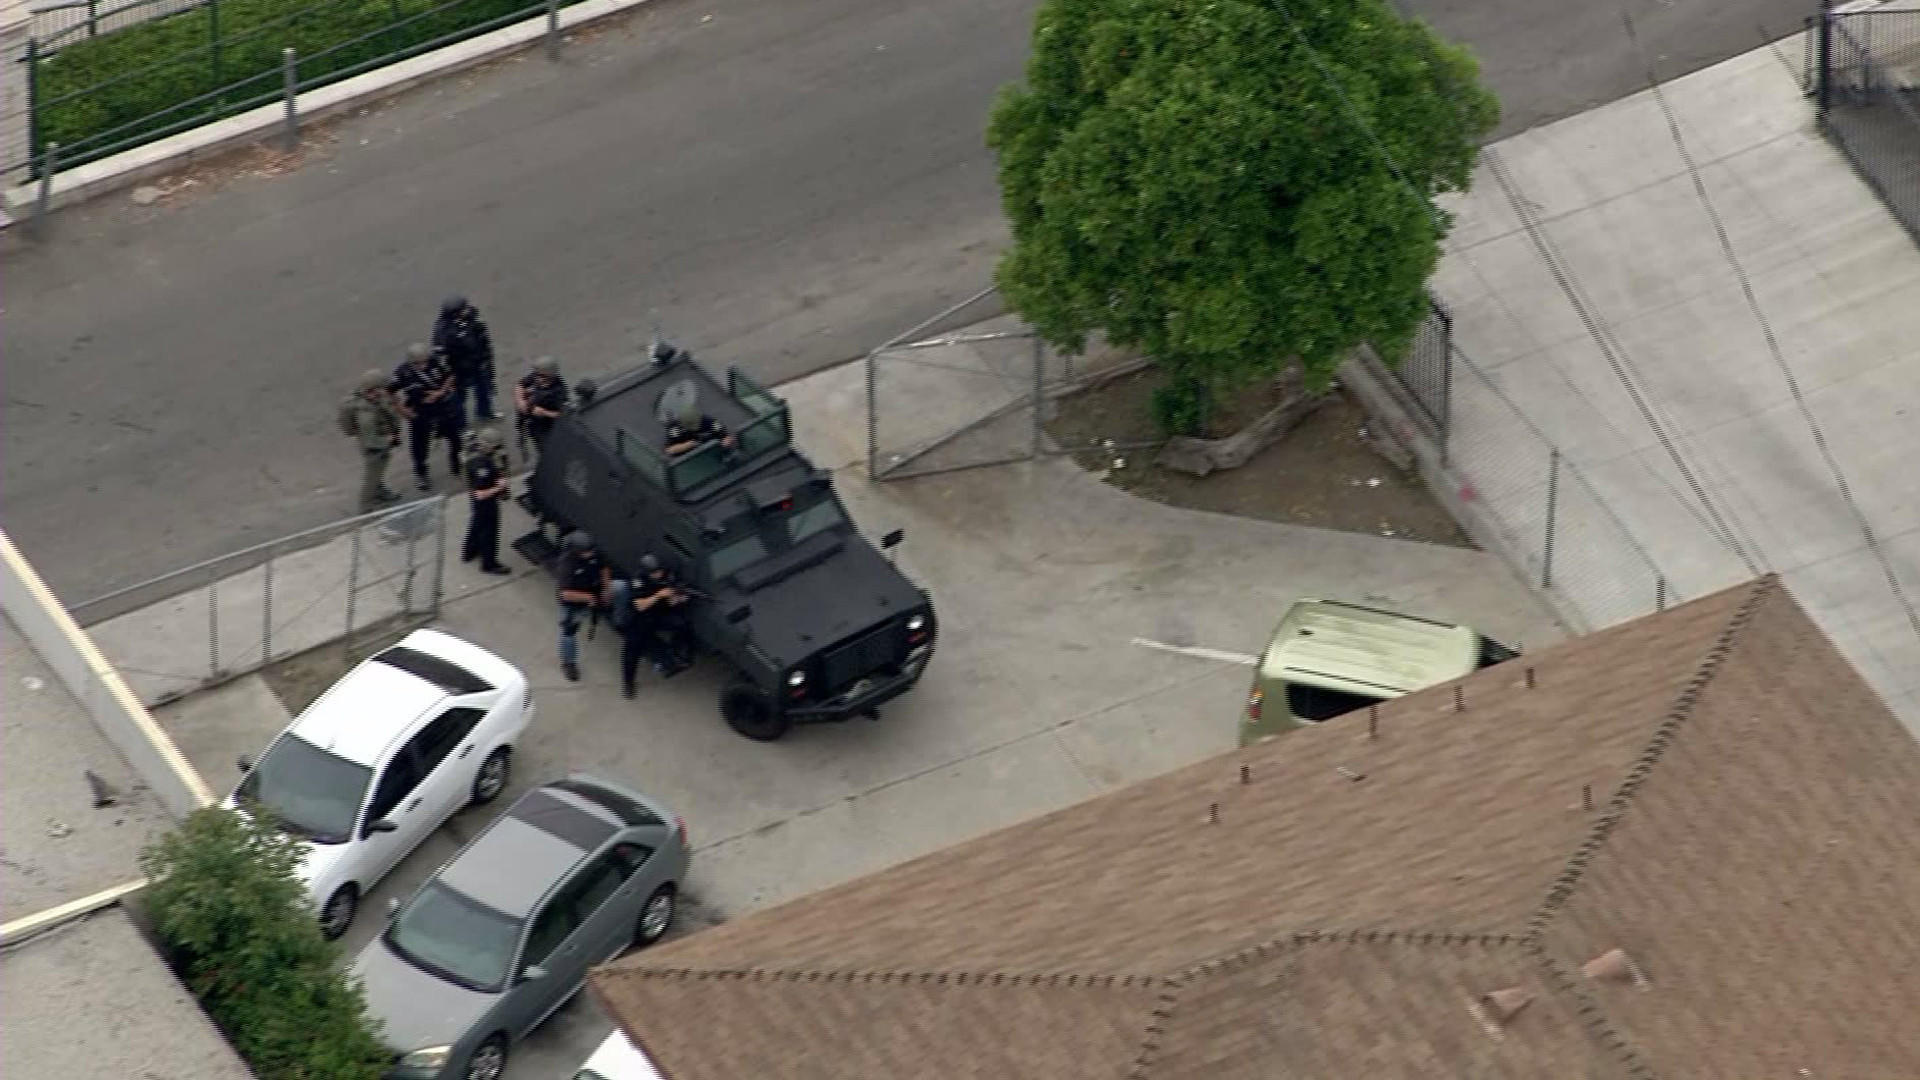 Authorities take a position outside a Whittier apartment complex during a standoff with a man believed to have taken a hostage.